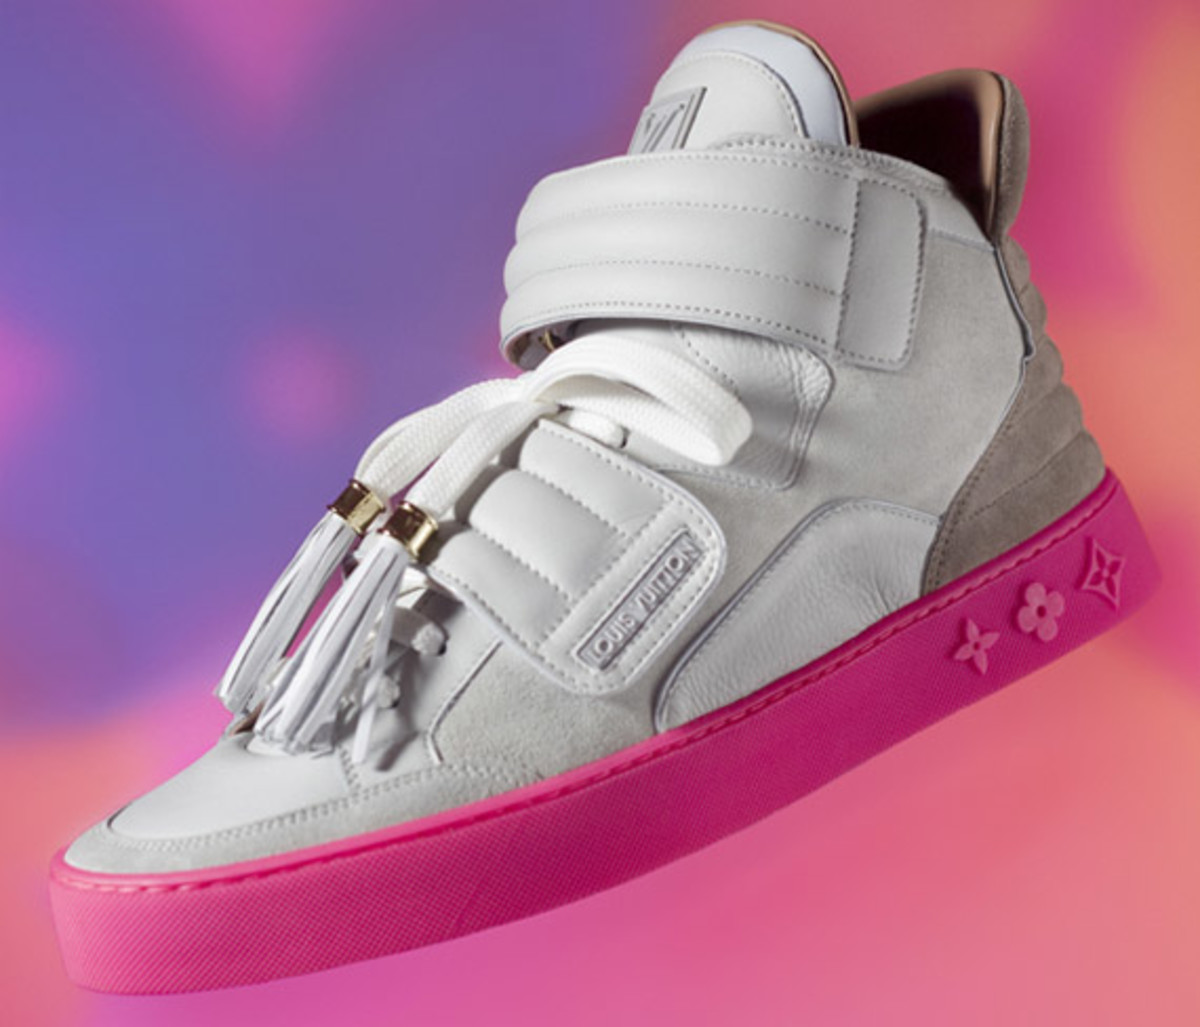 louis-vuitton-x-kanye-west-sneakers-preview-4